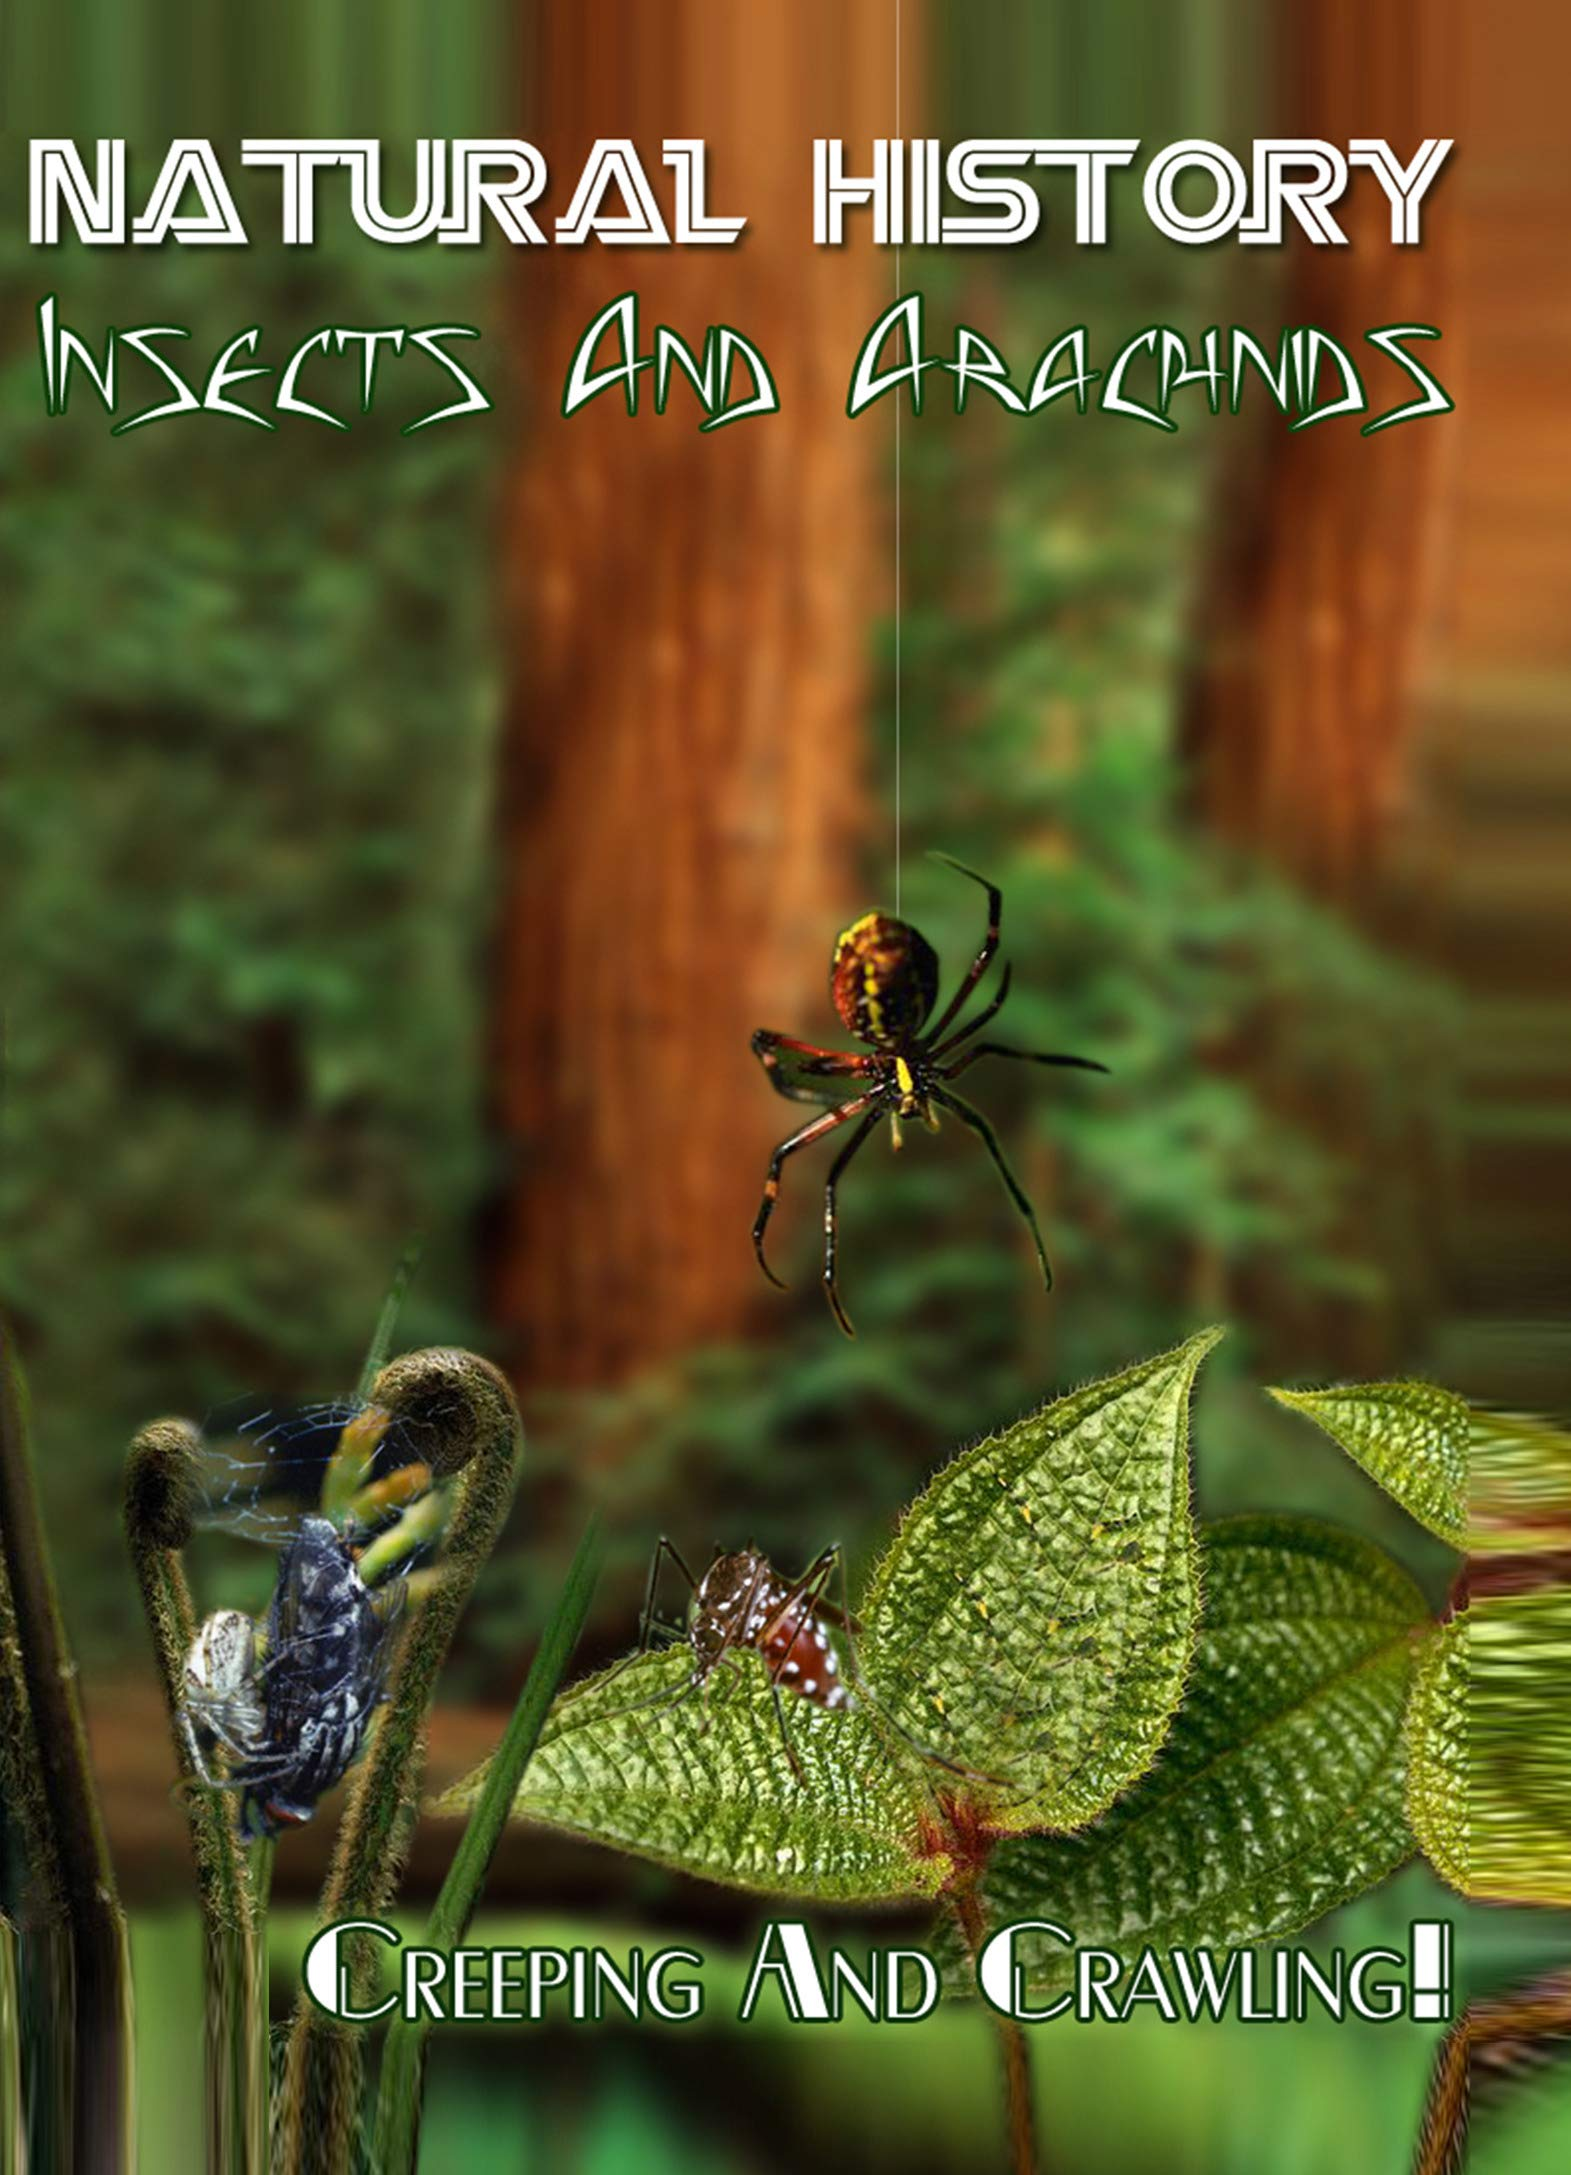 Natural History - Insects And Arachnids Creeping and Crawling! (1951-1969) on Amazon Prime Video UK